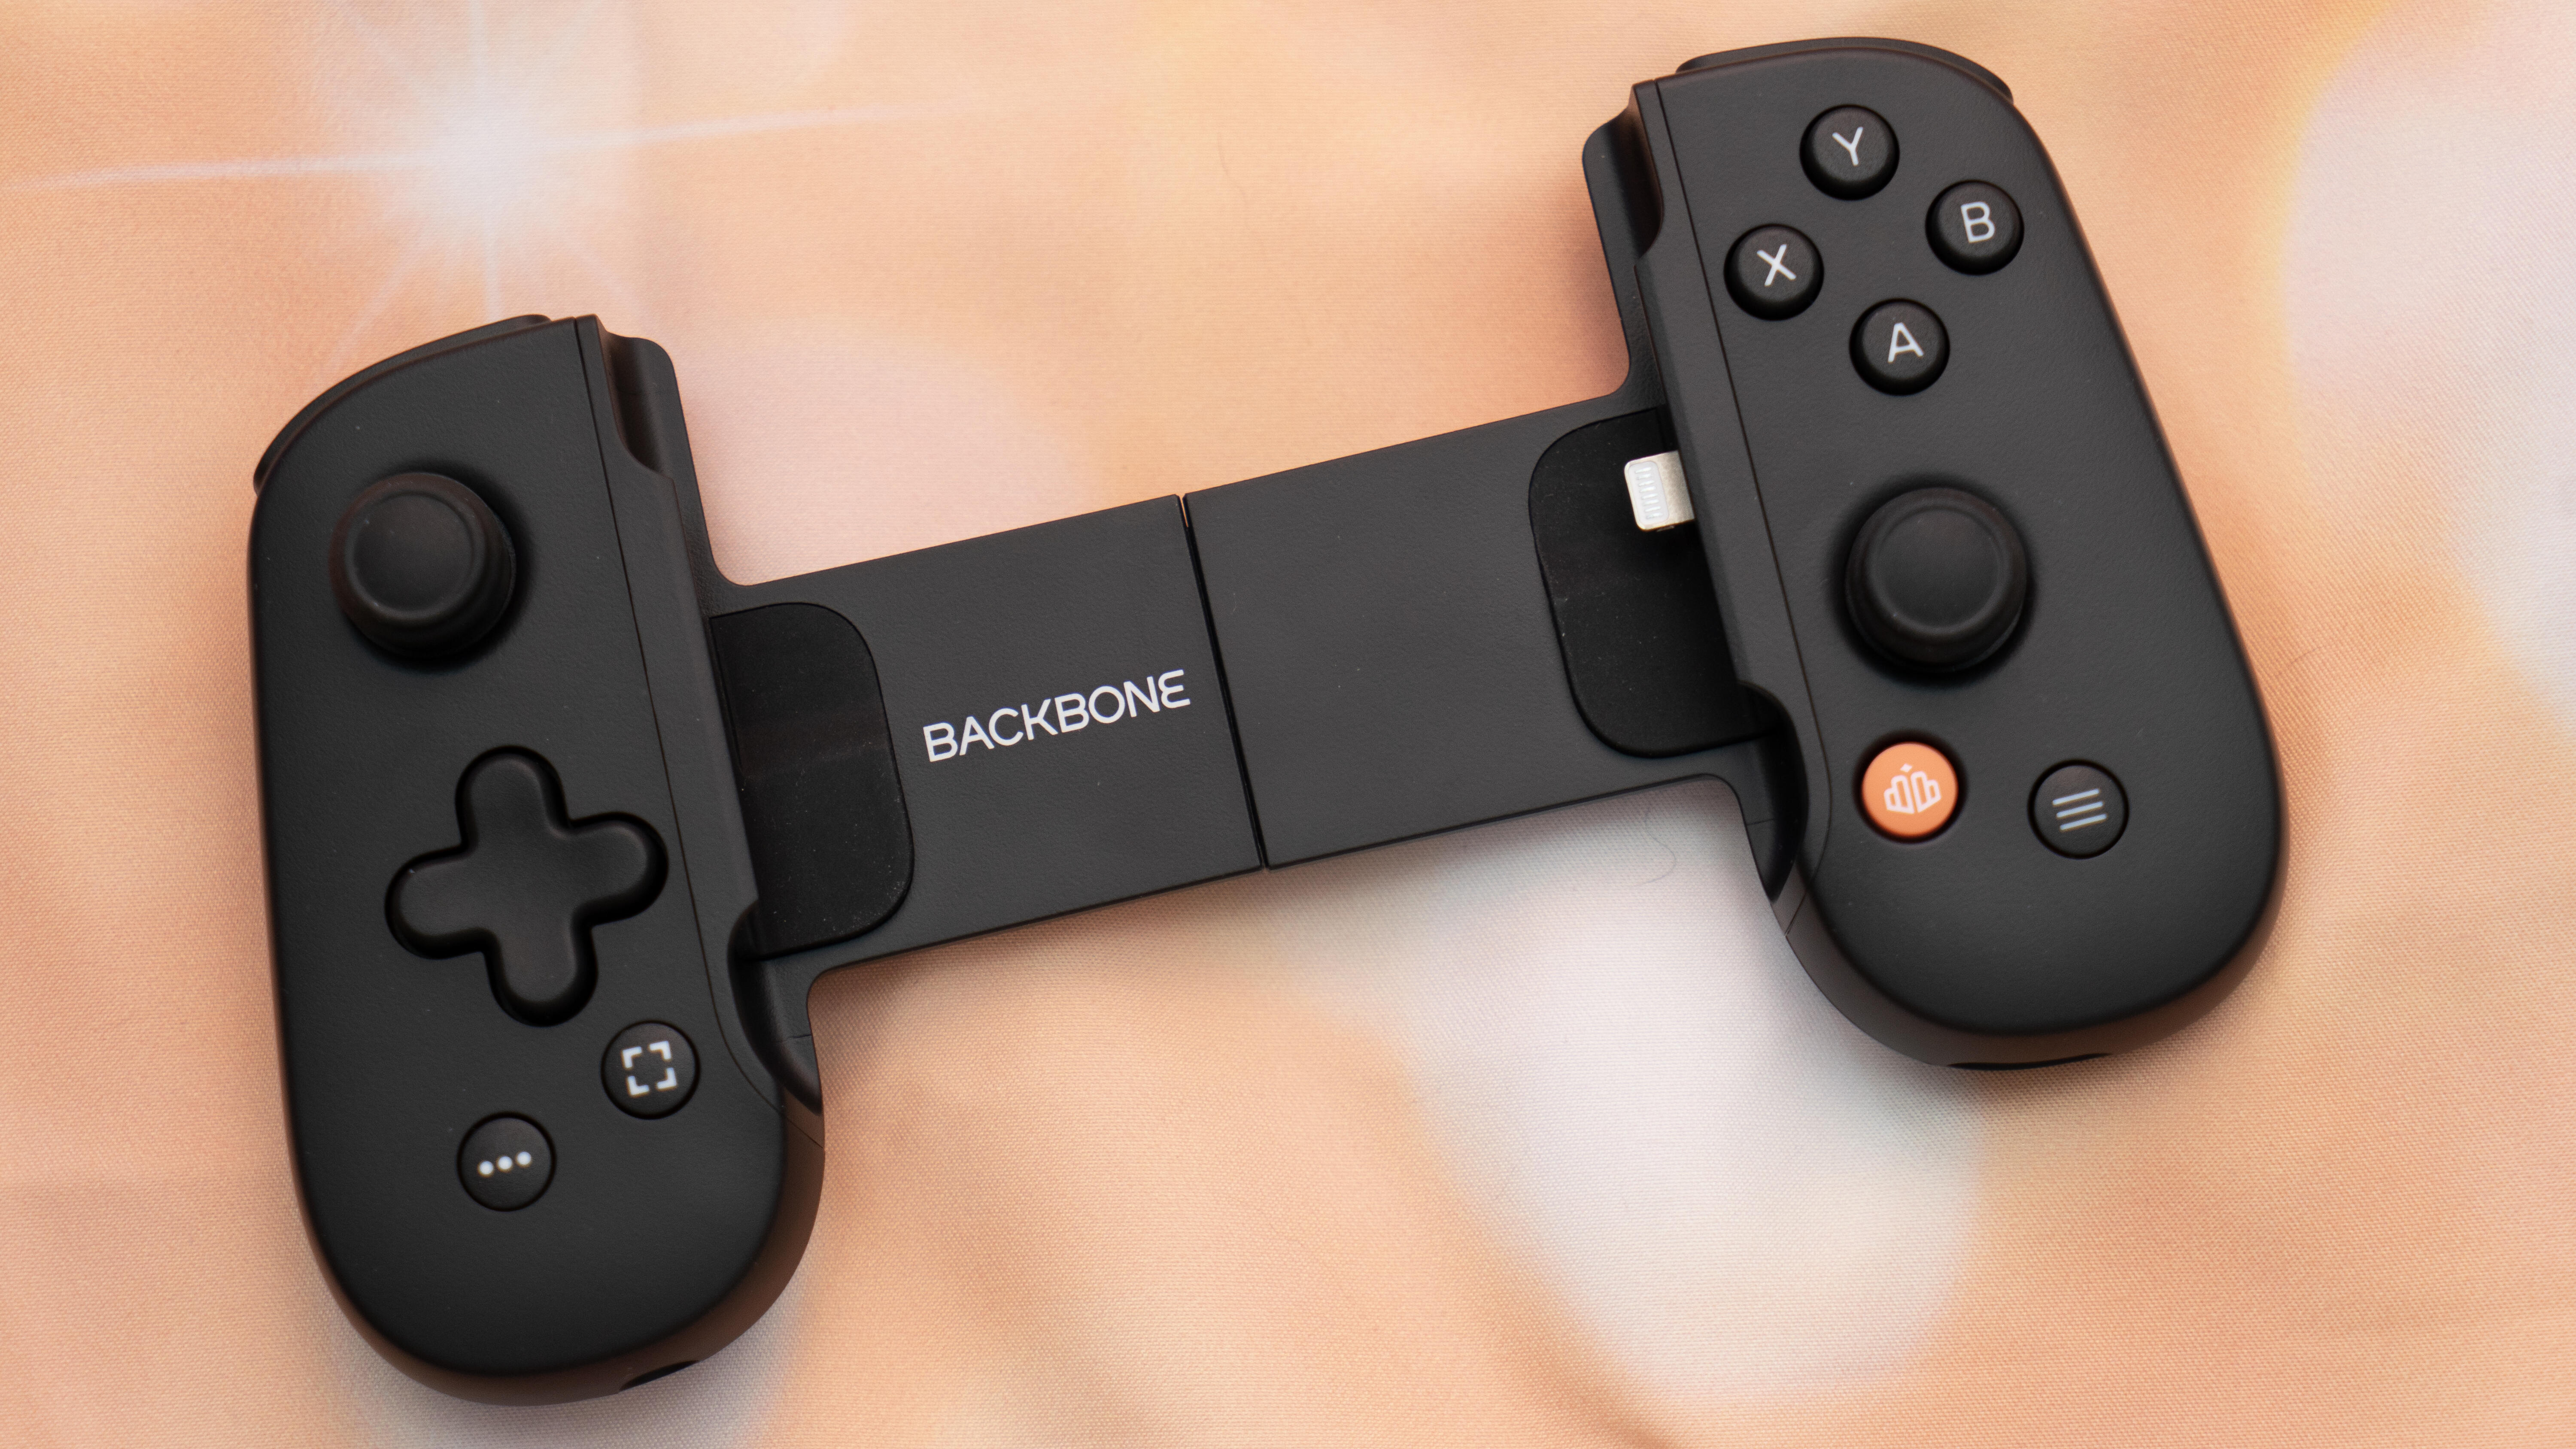 Best gaming accessories to give as holiday gifts